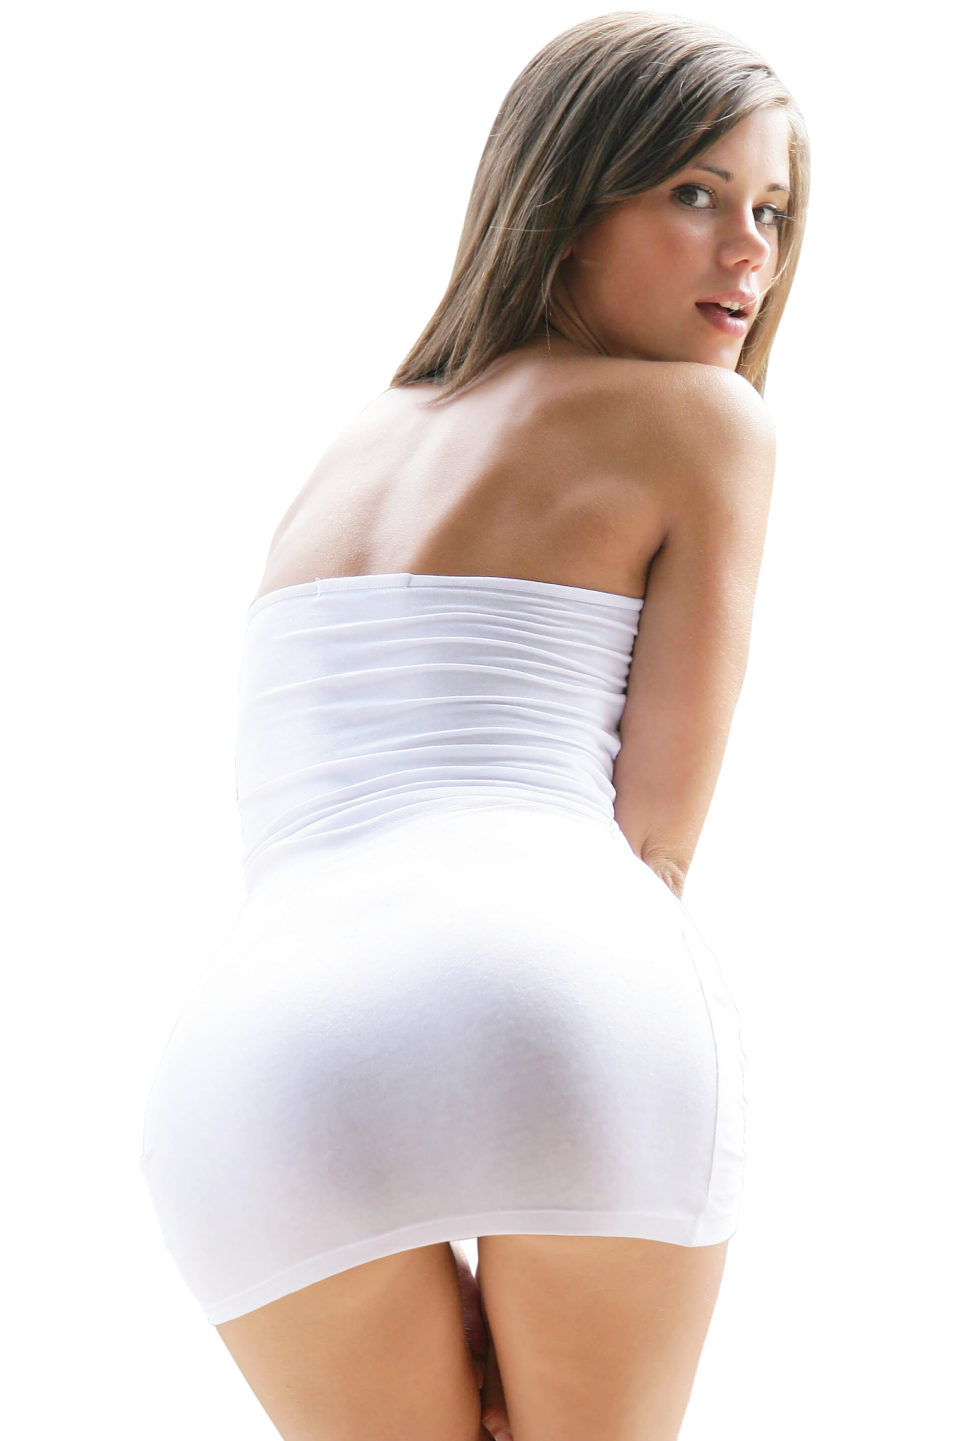 Sexy Little Caprice in White Dress PNG Image